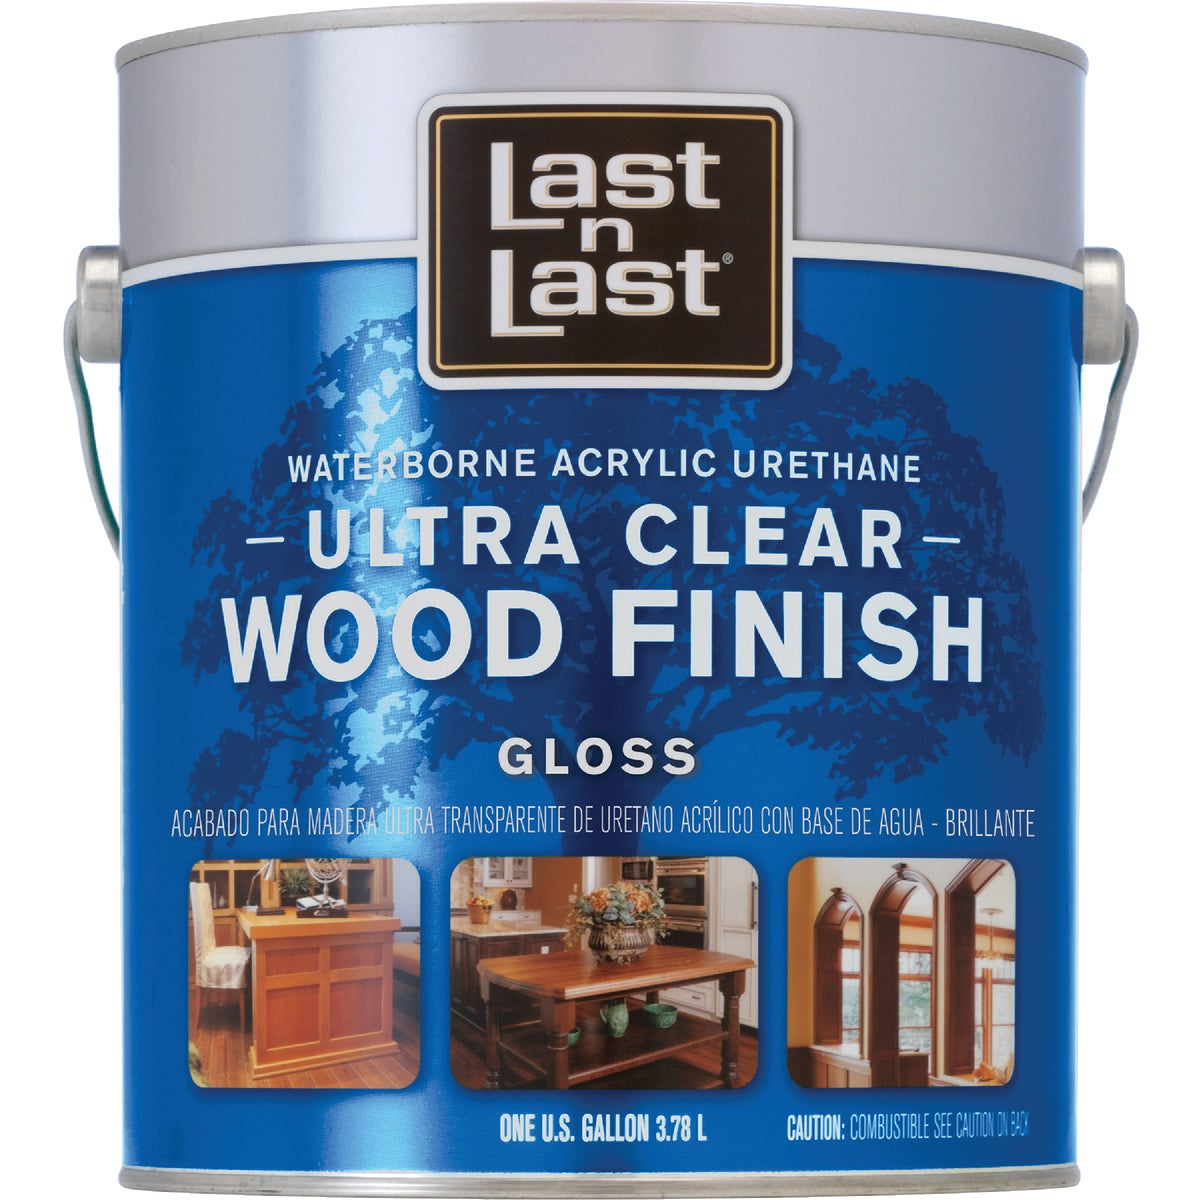 INT GLOSS W/B URETHANE - 13001 by Absolute Coatings